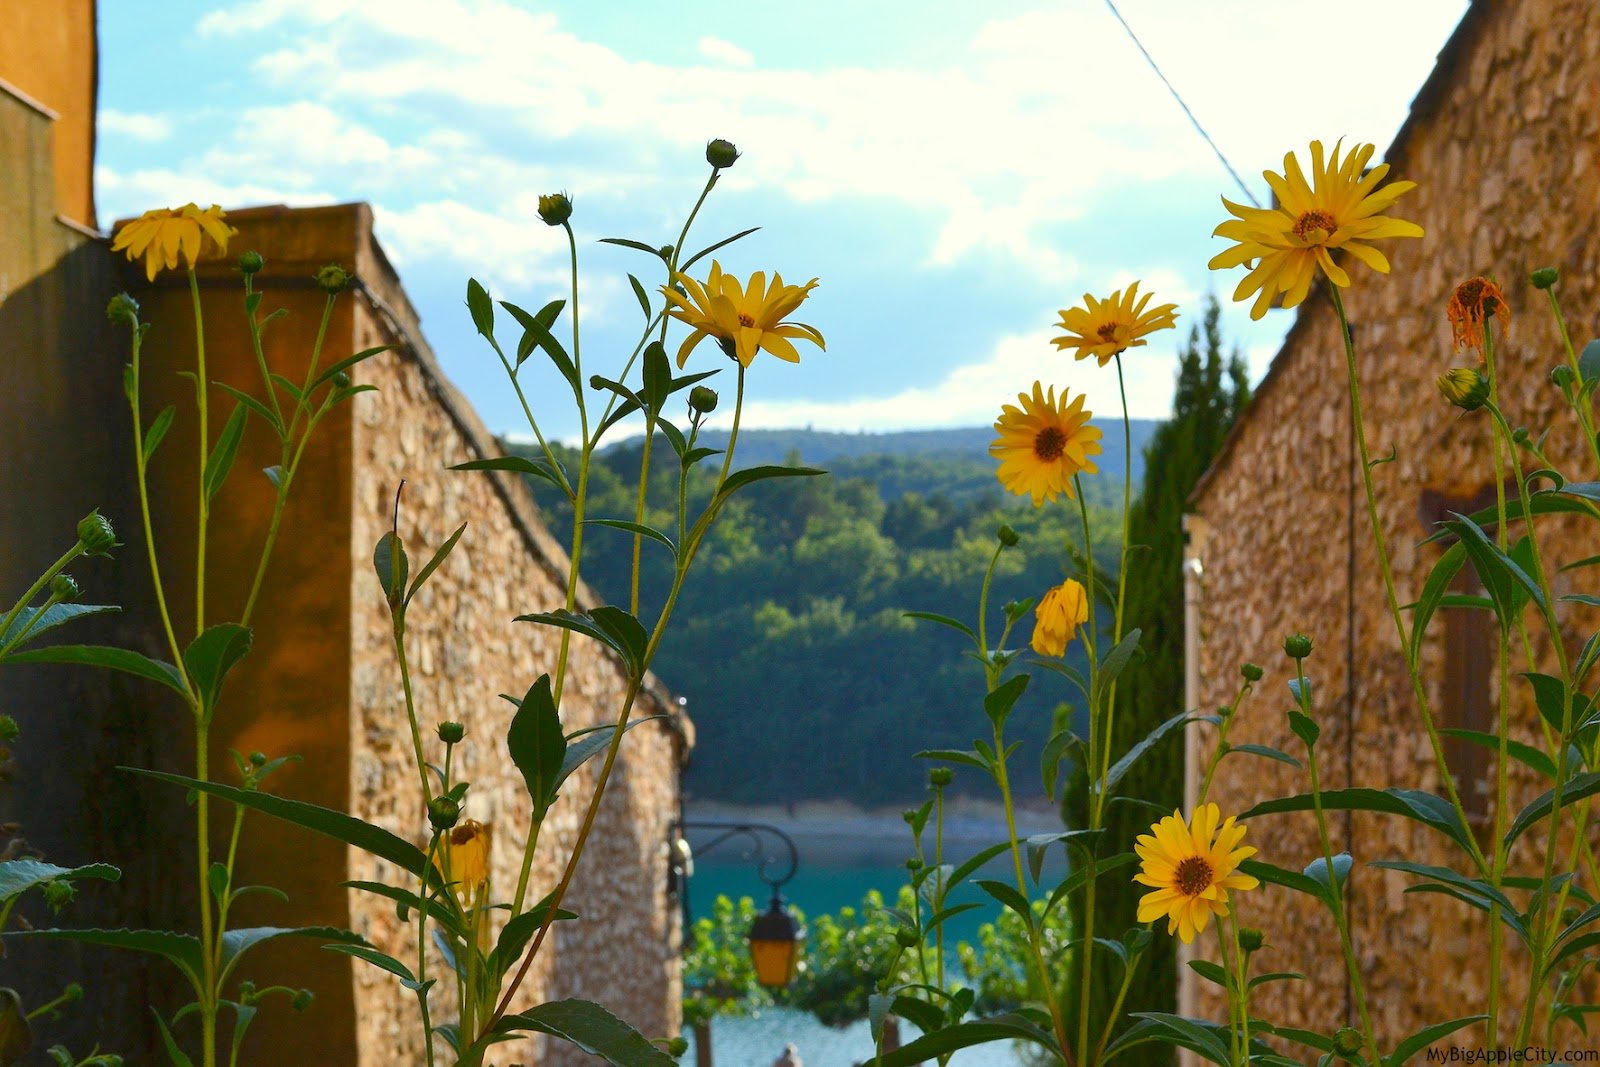 mybigapplecity-south-france-visit-travel-blogger